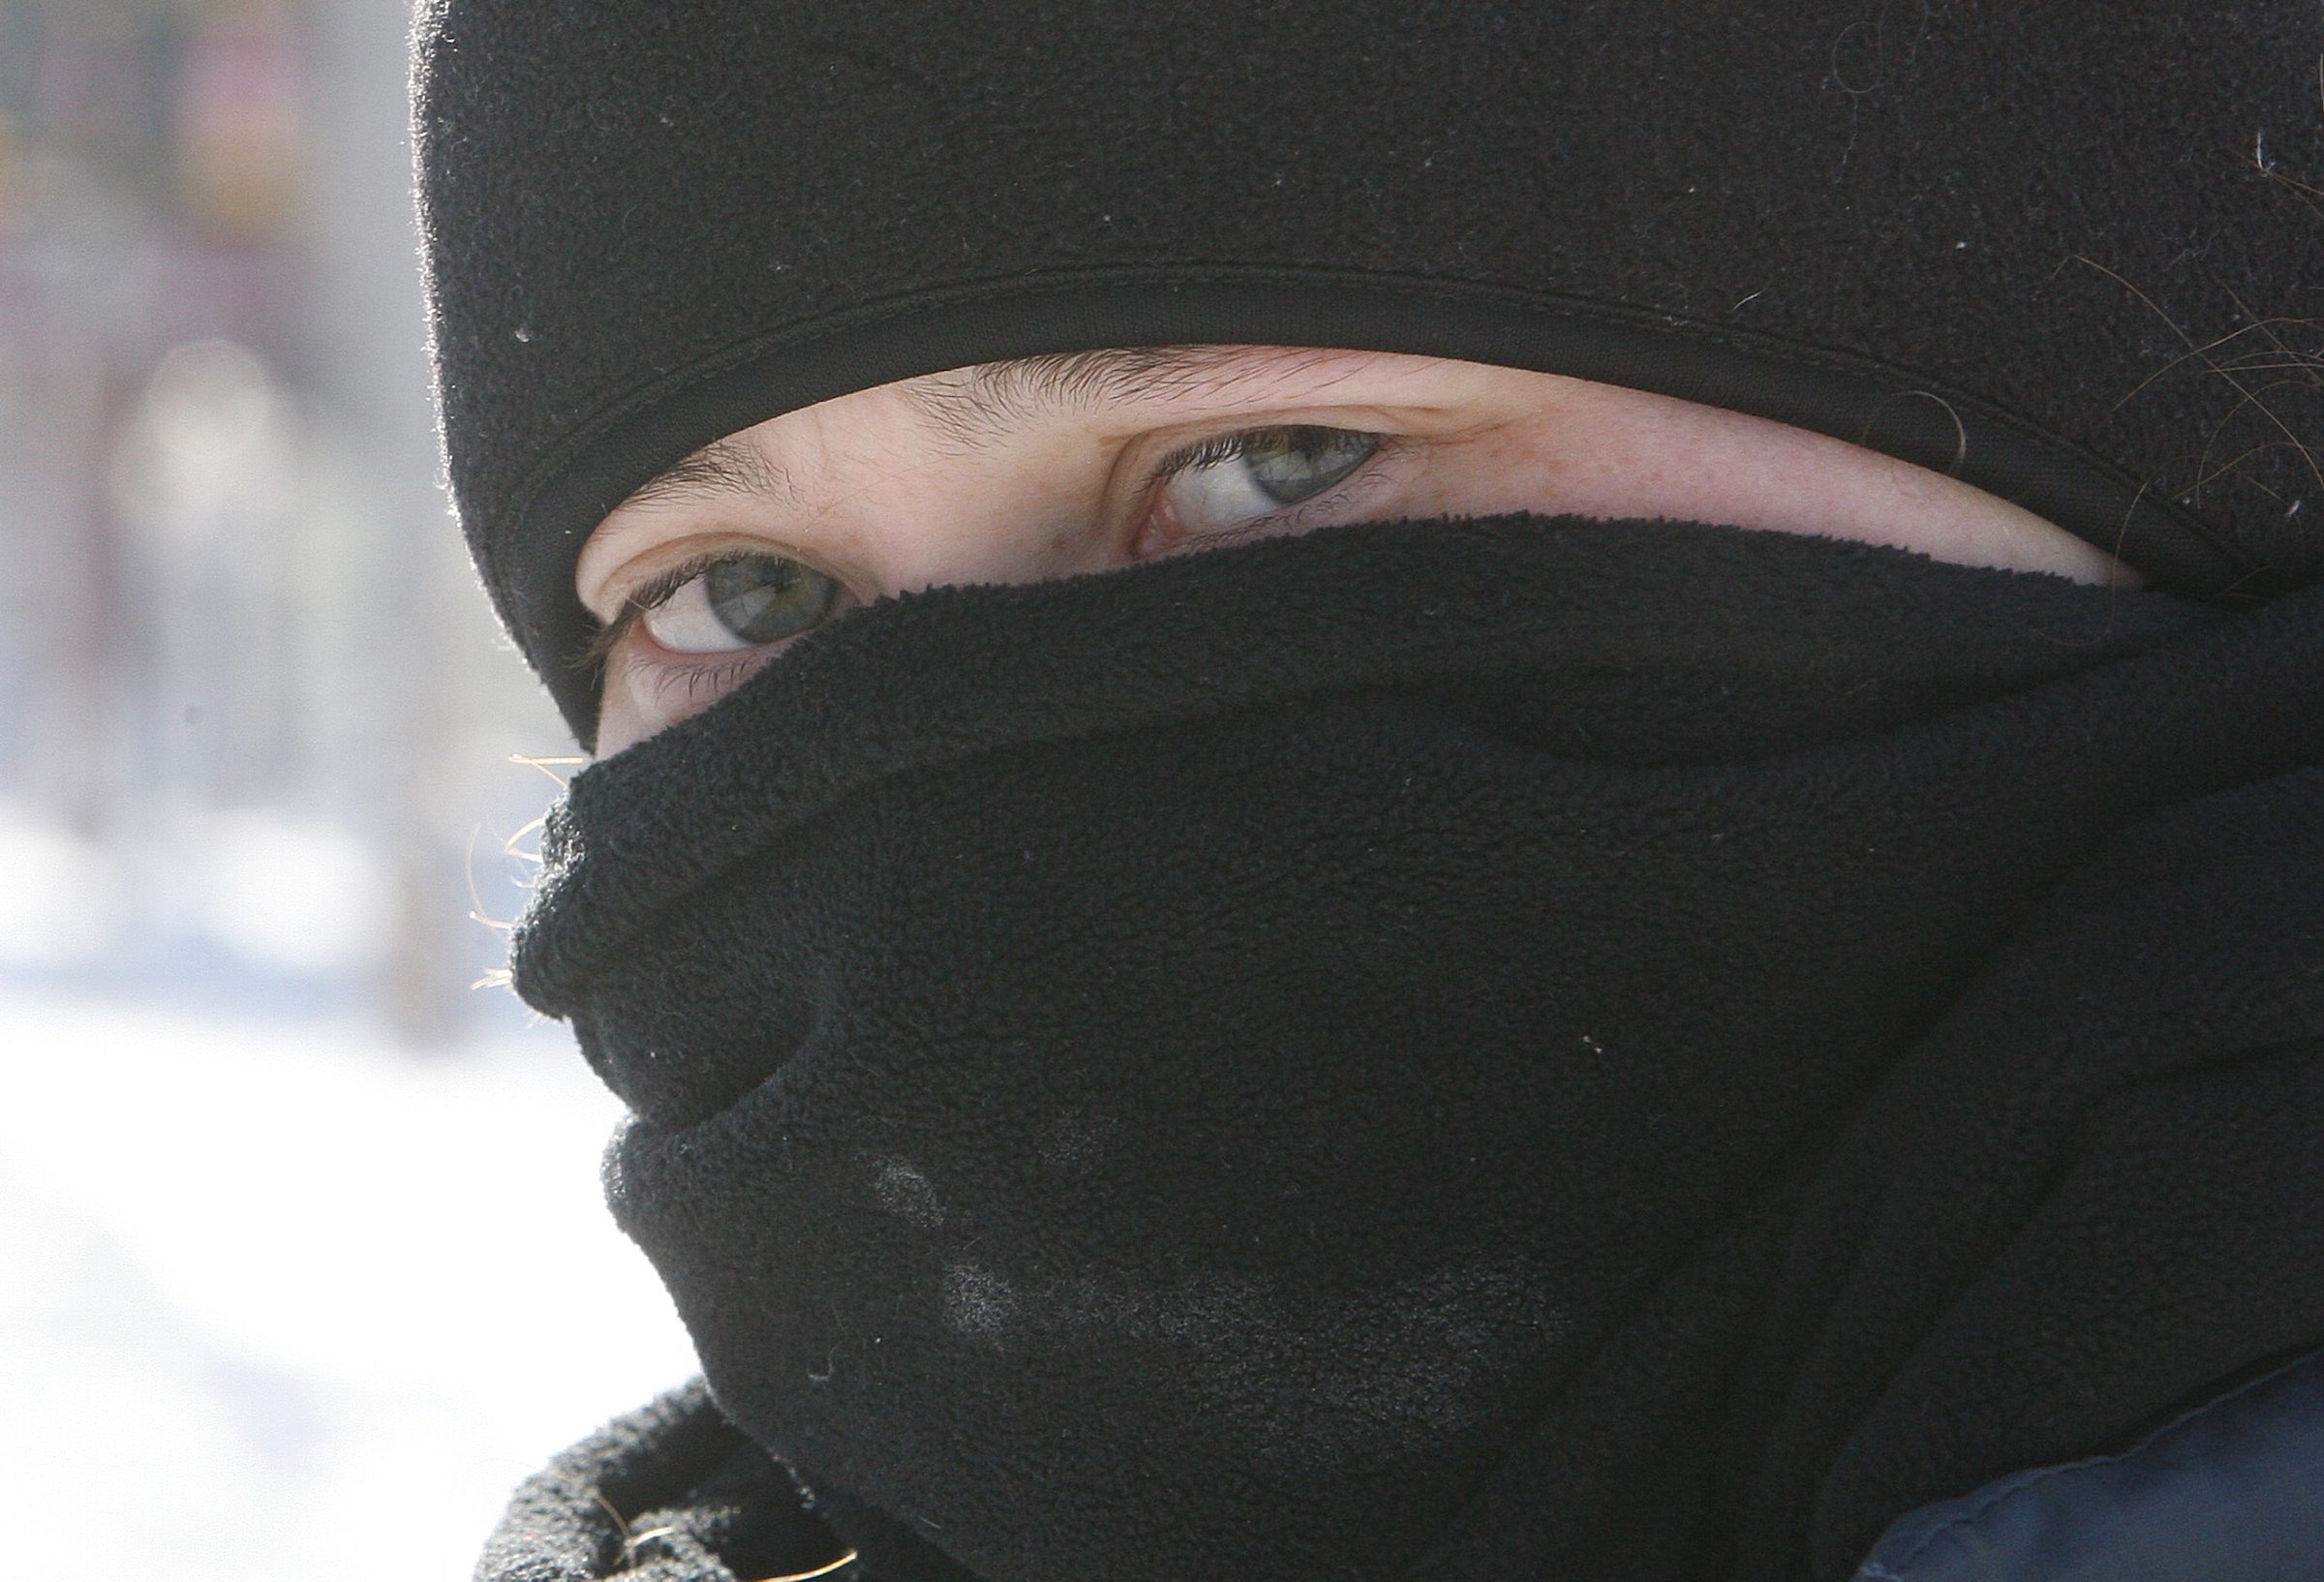 Robyn Baker exposes as little skin as possible Monday as she waits for a bus along Transit Road in Amherst on Monday.